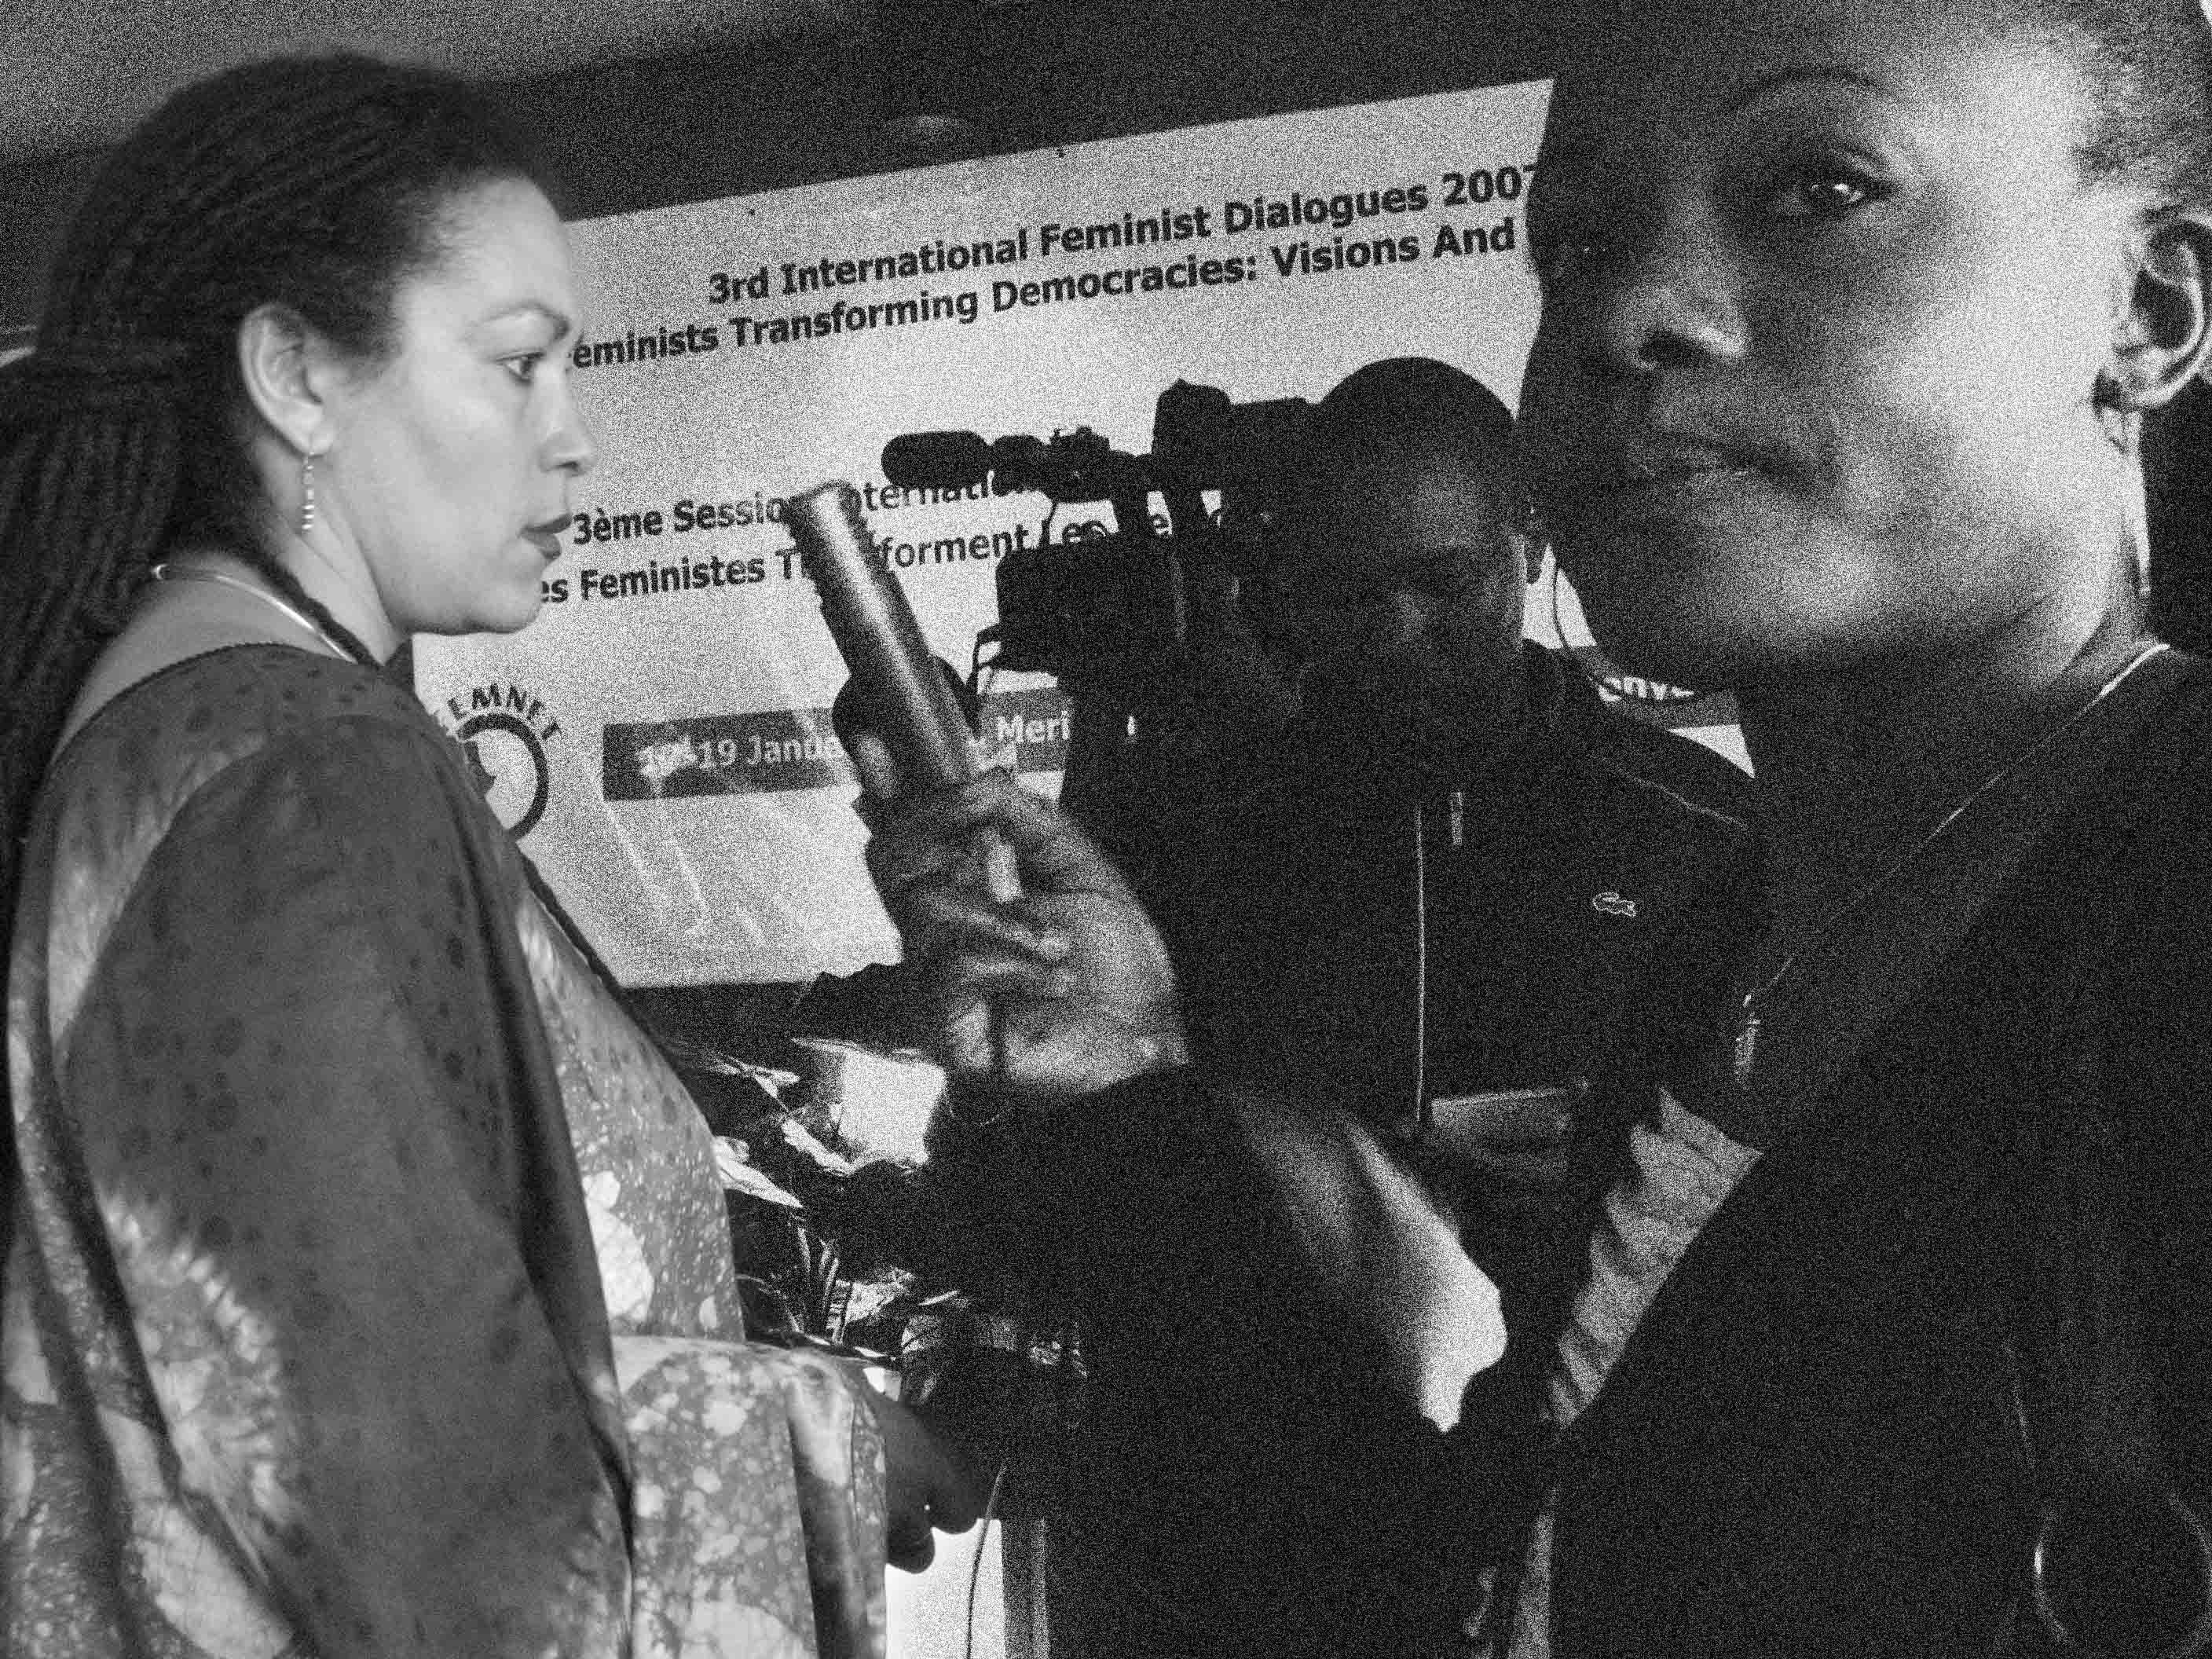 L. Muthoni Wanyeki at the Press Conference of the Feminist Dialogues in Nairobi, Kenya